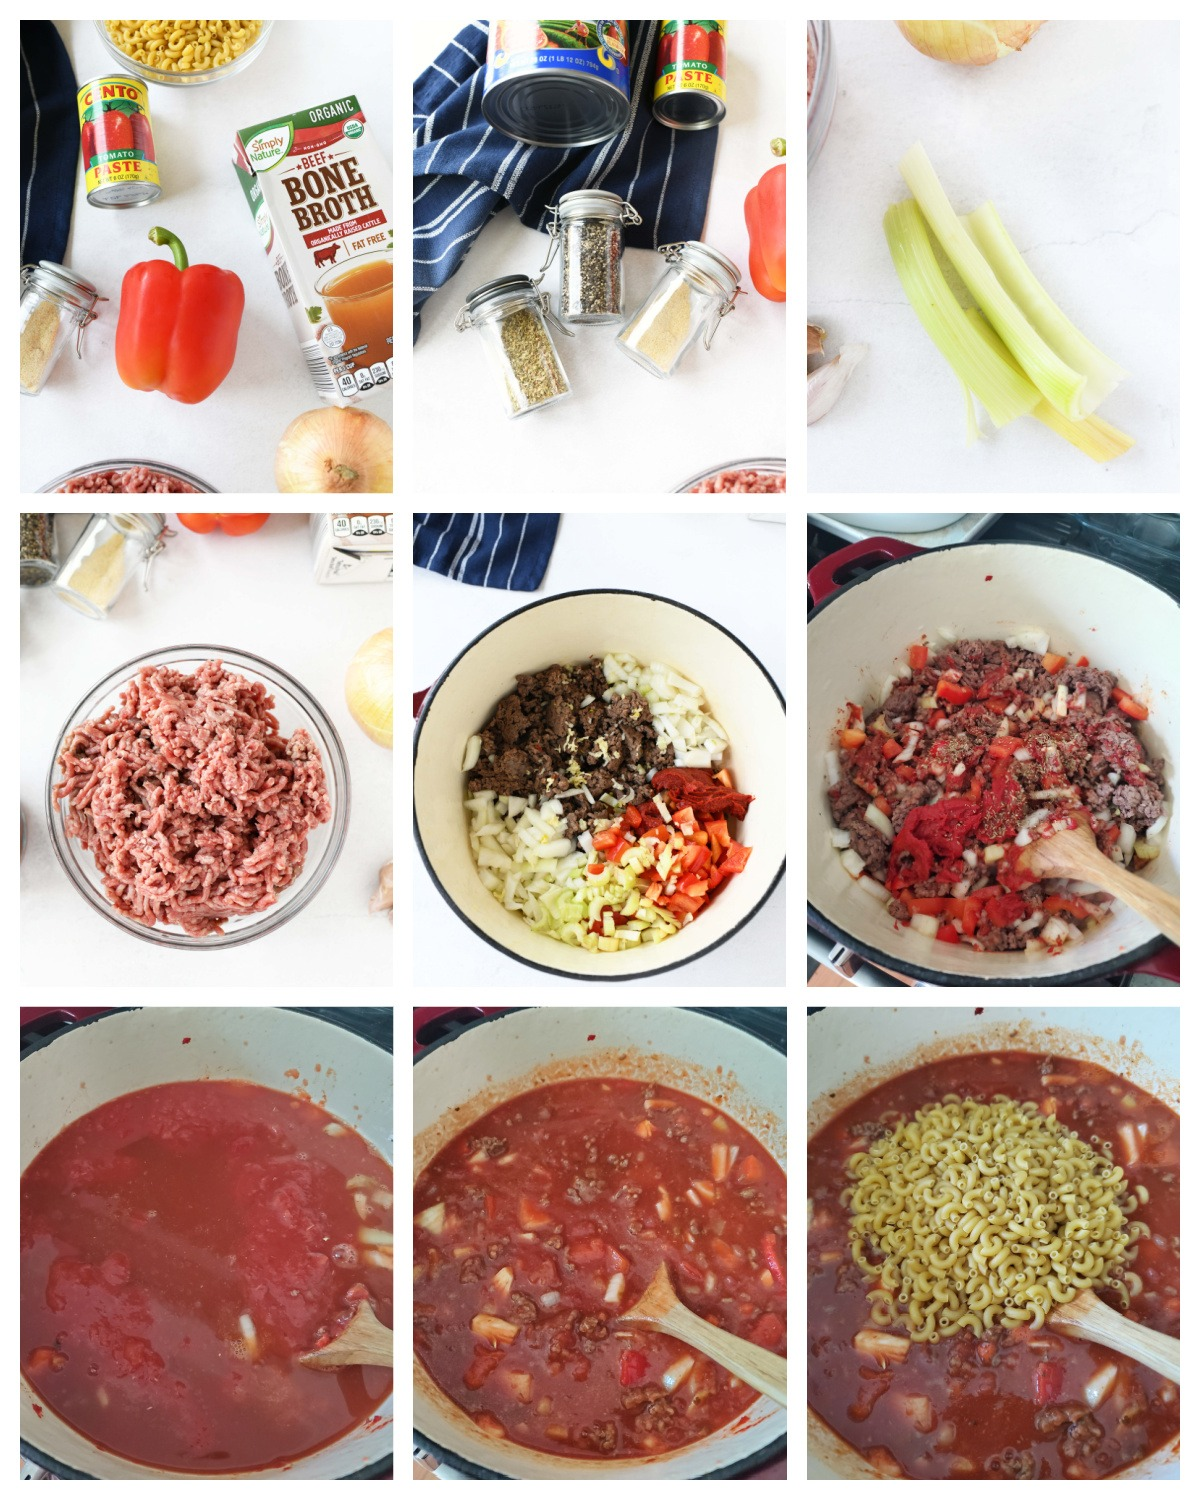 A nine block image collage on how to make American Chop Suey.